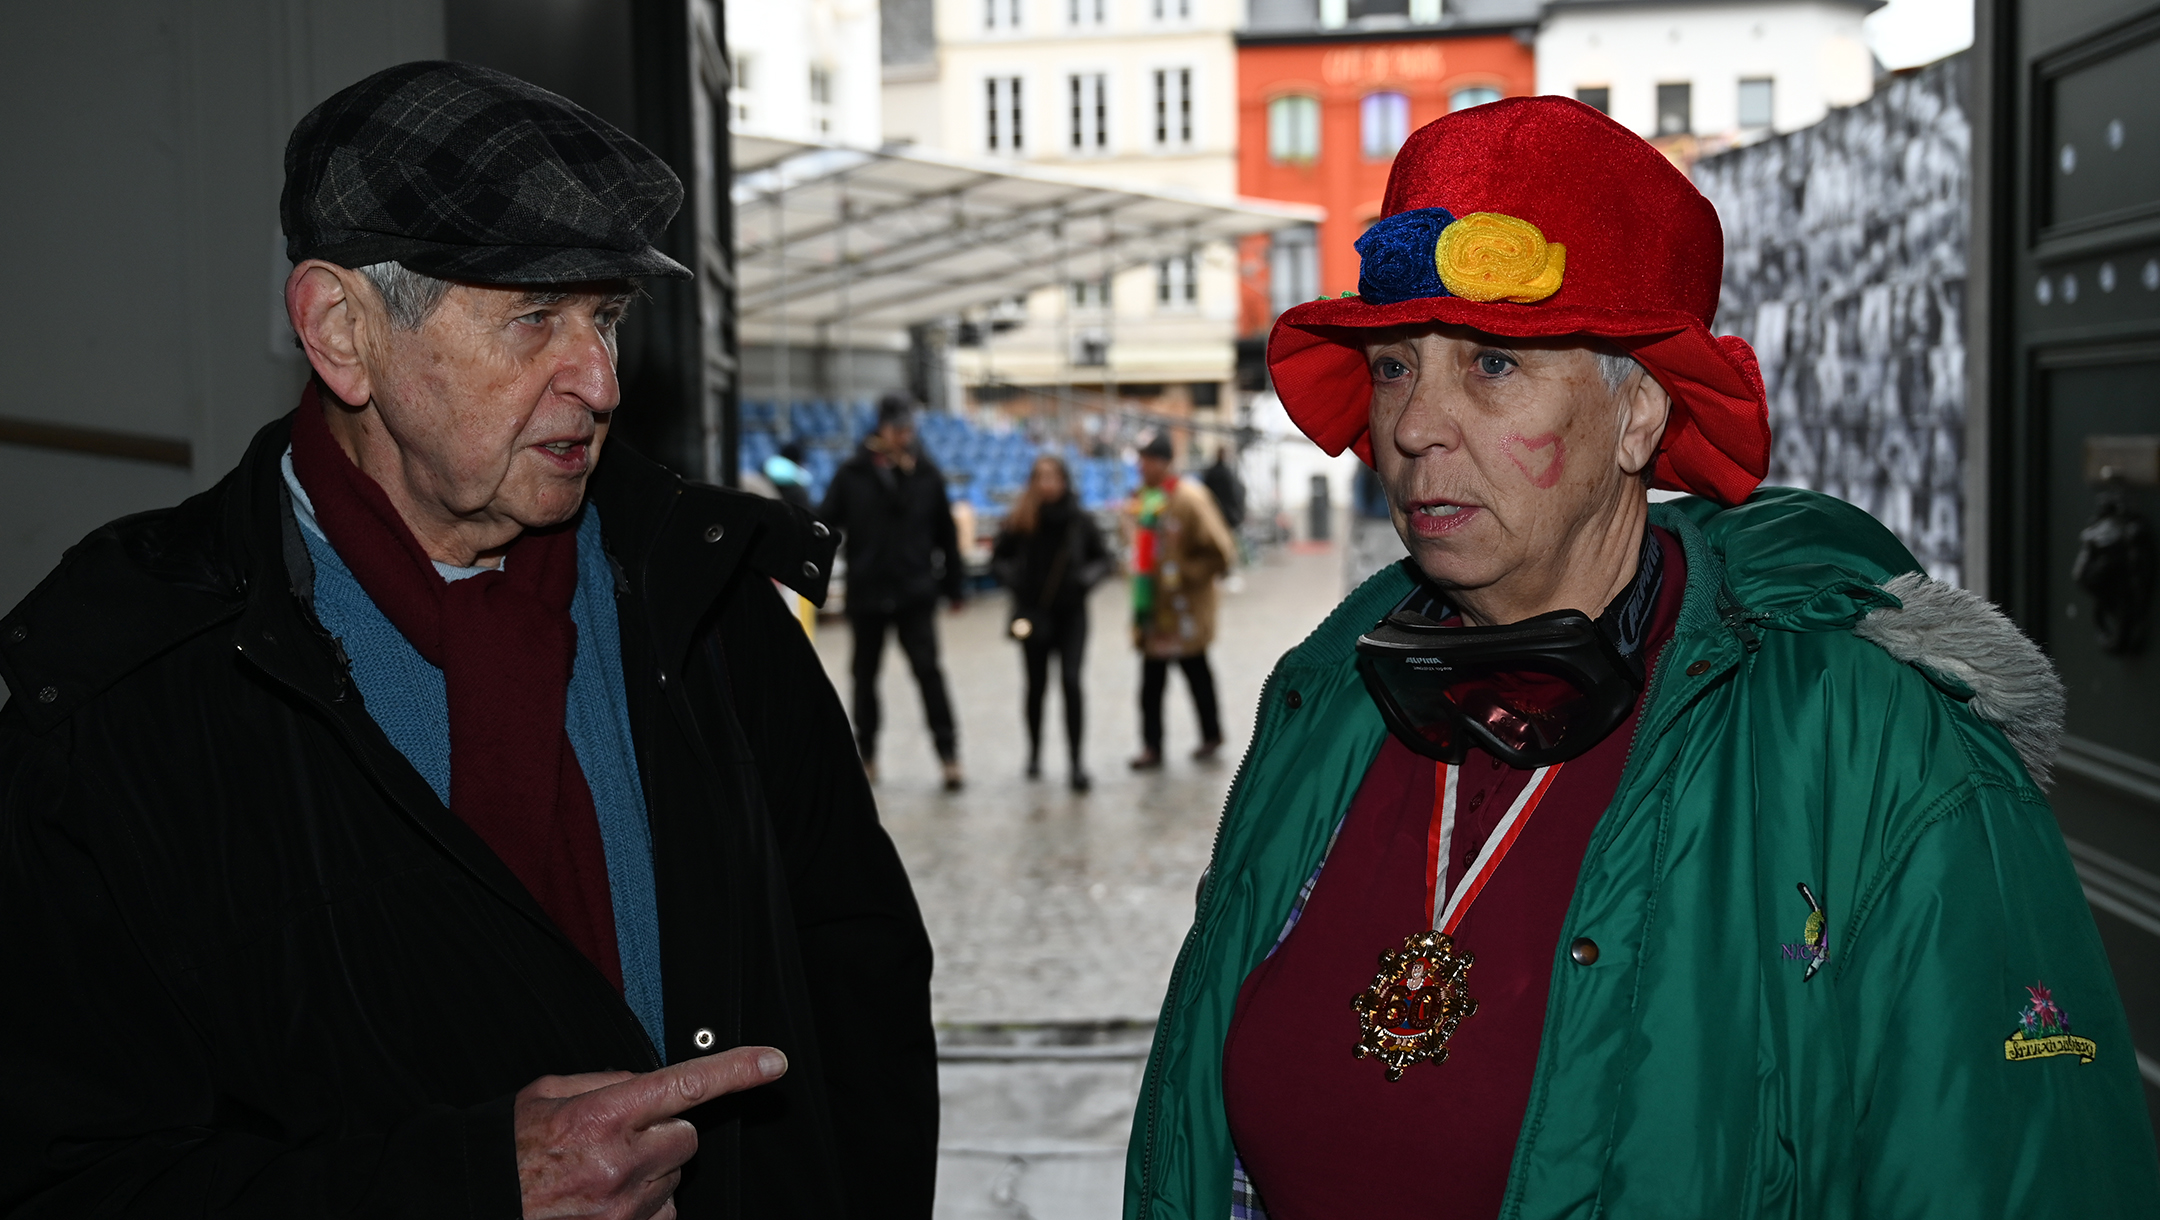 Greet Stevens, right, speaking to Rudi Roth, a Belgian-Jewish journalist, while wearing blackened goggles to protest perceived anti-Semitism at the carnival of Aalst, Belgium on Feb. 23, 2020. (Cnaan Liphshiz)